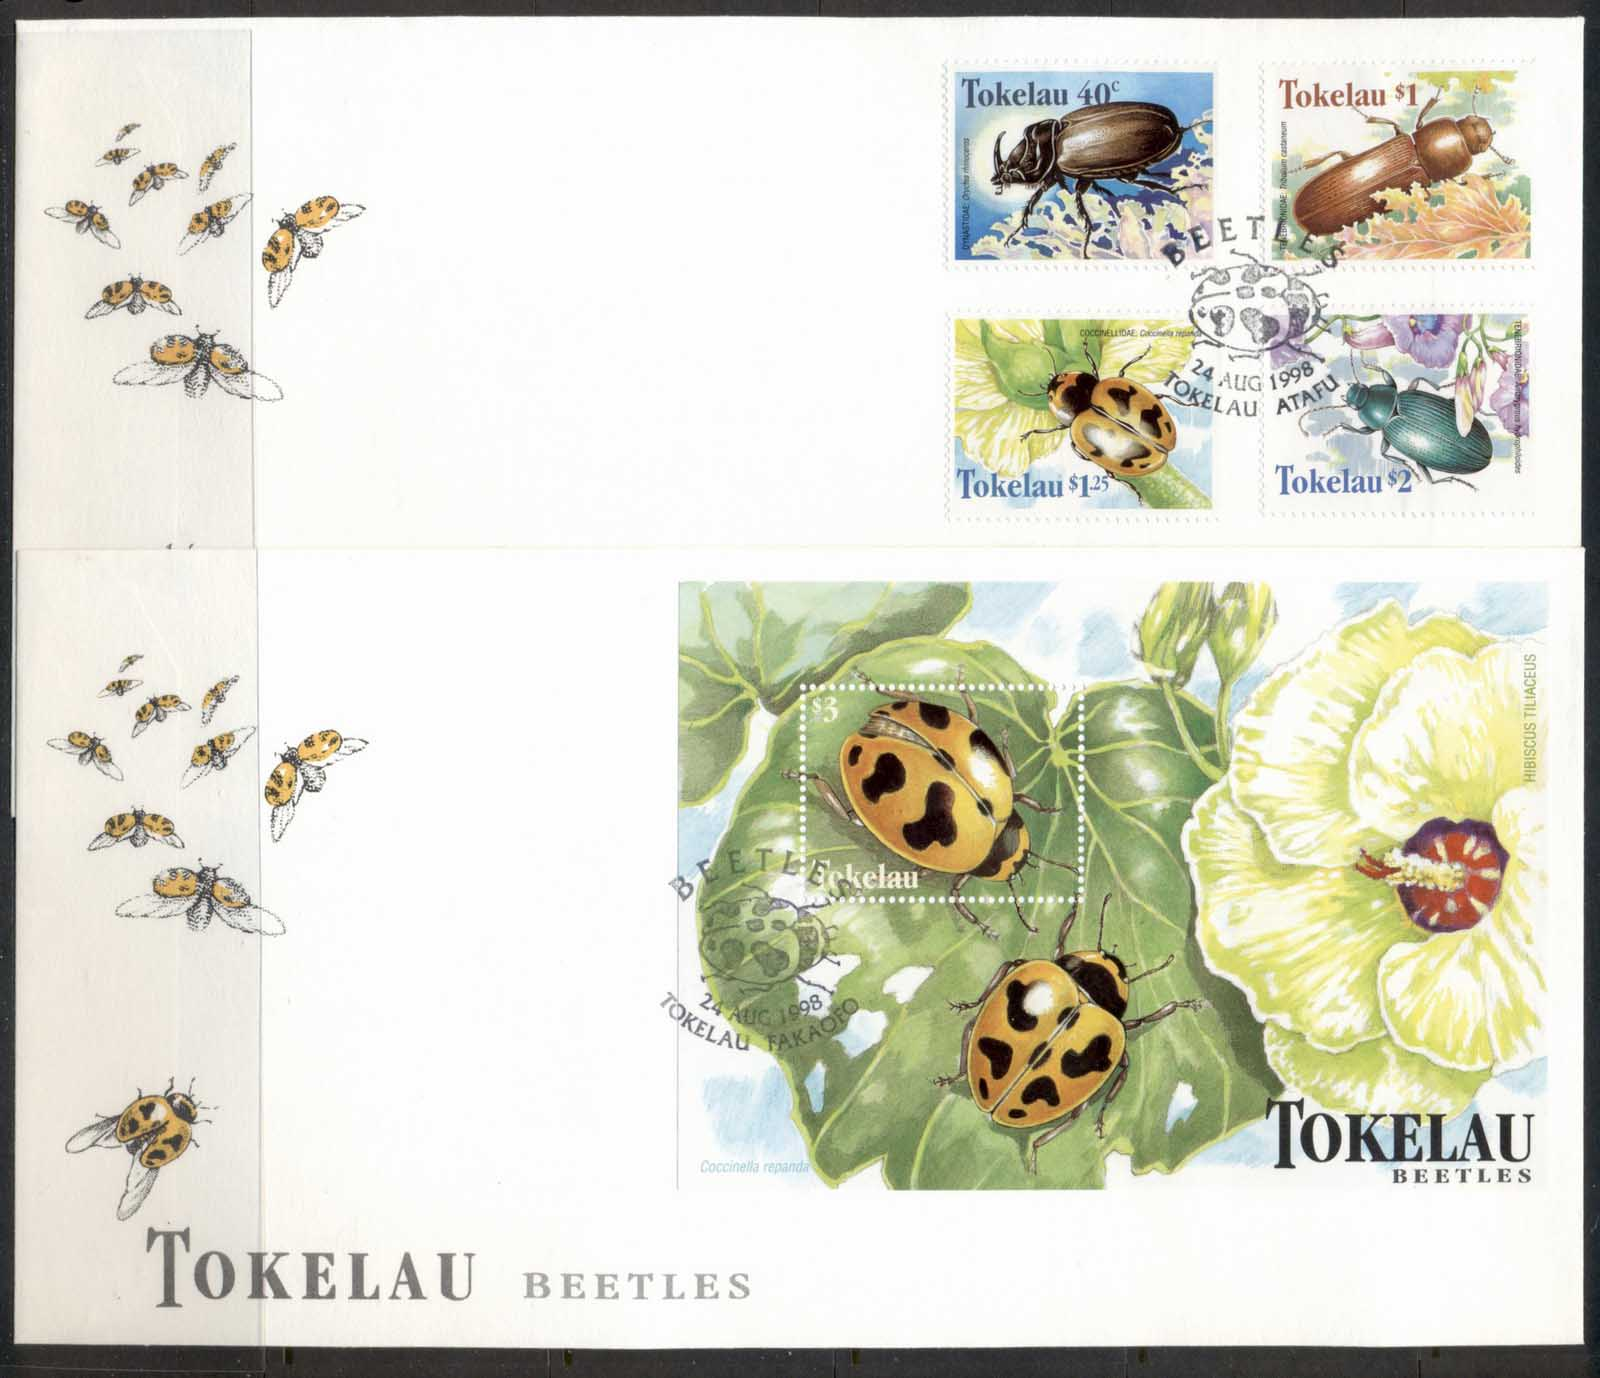 Tokelau 1998 Beetles 2x FDC